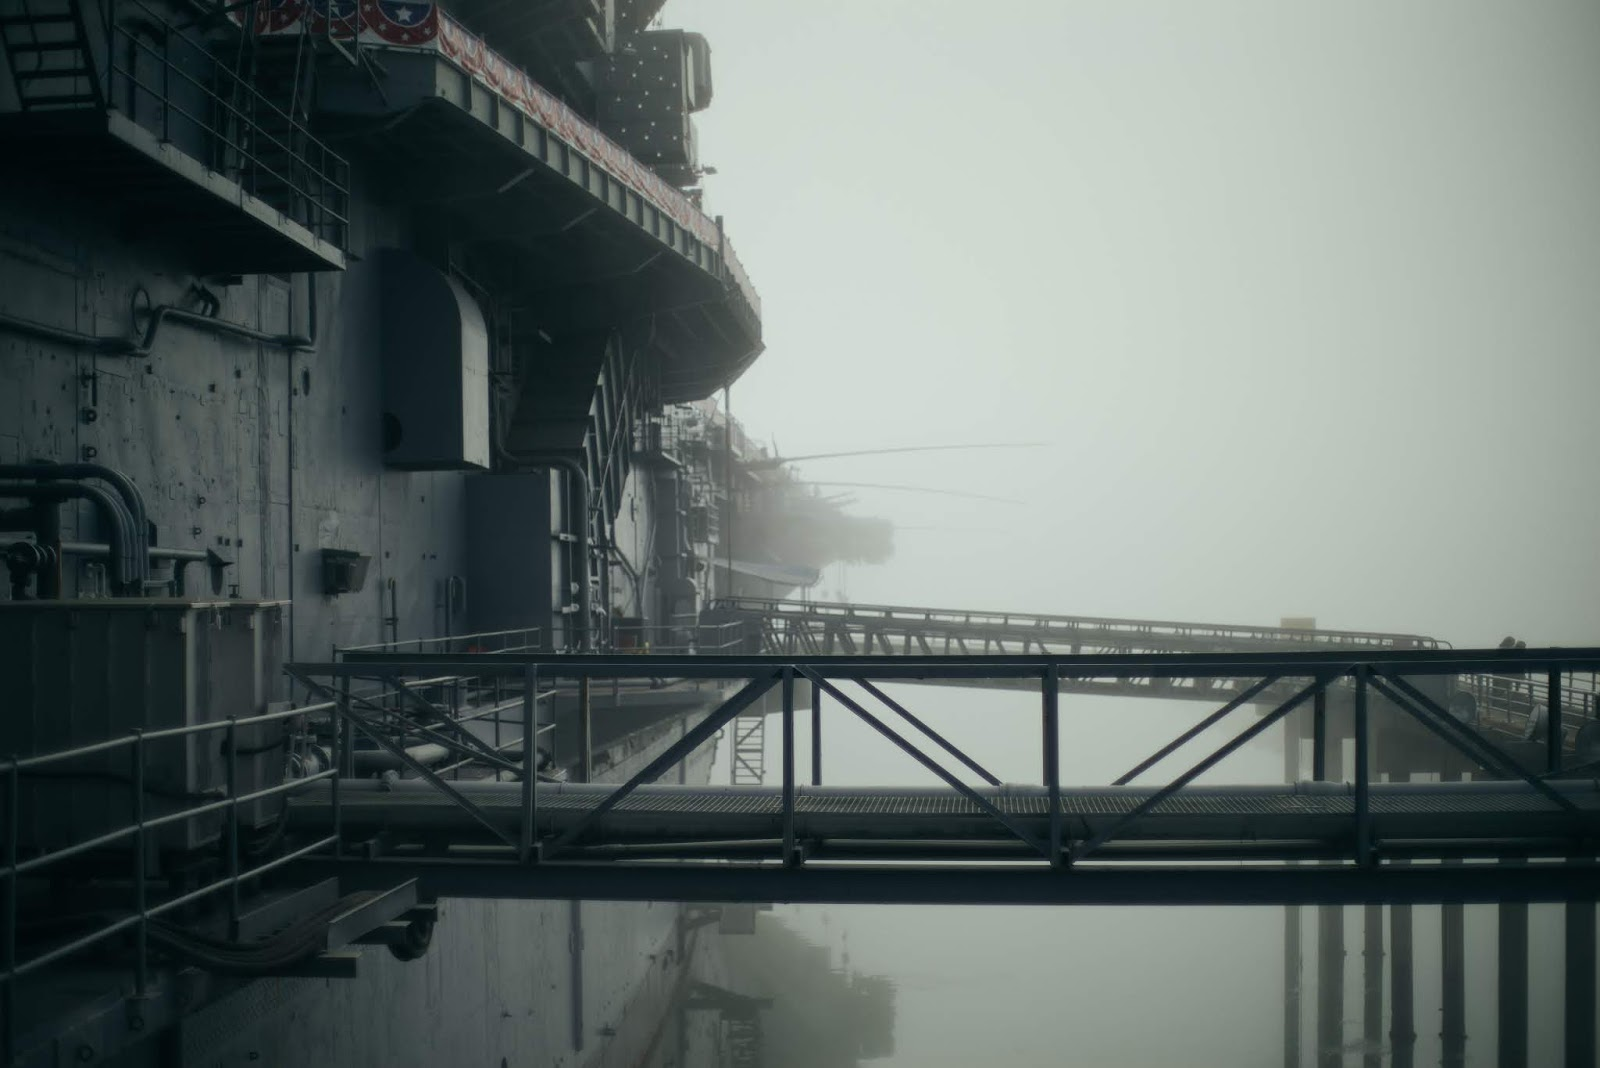 gangway of a ship reaches the dock in fog to illustrate blog post about movie overlord